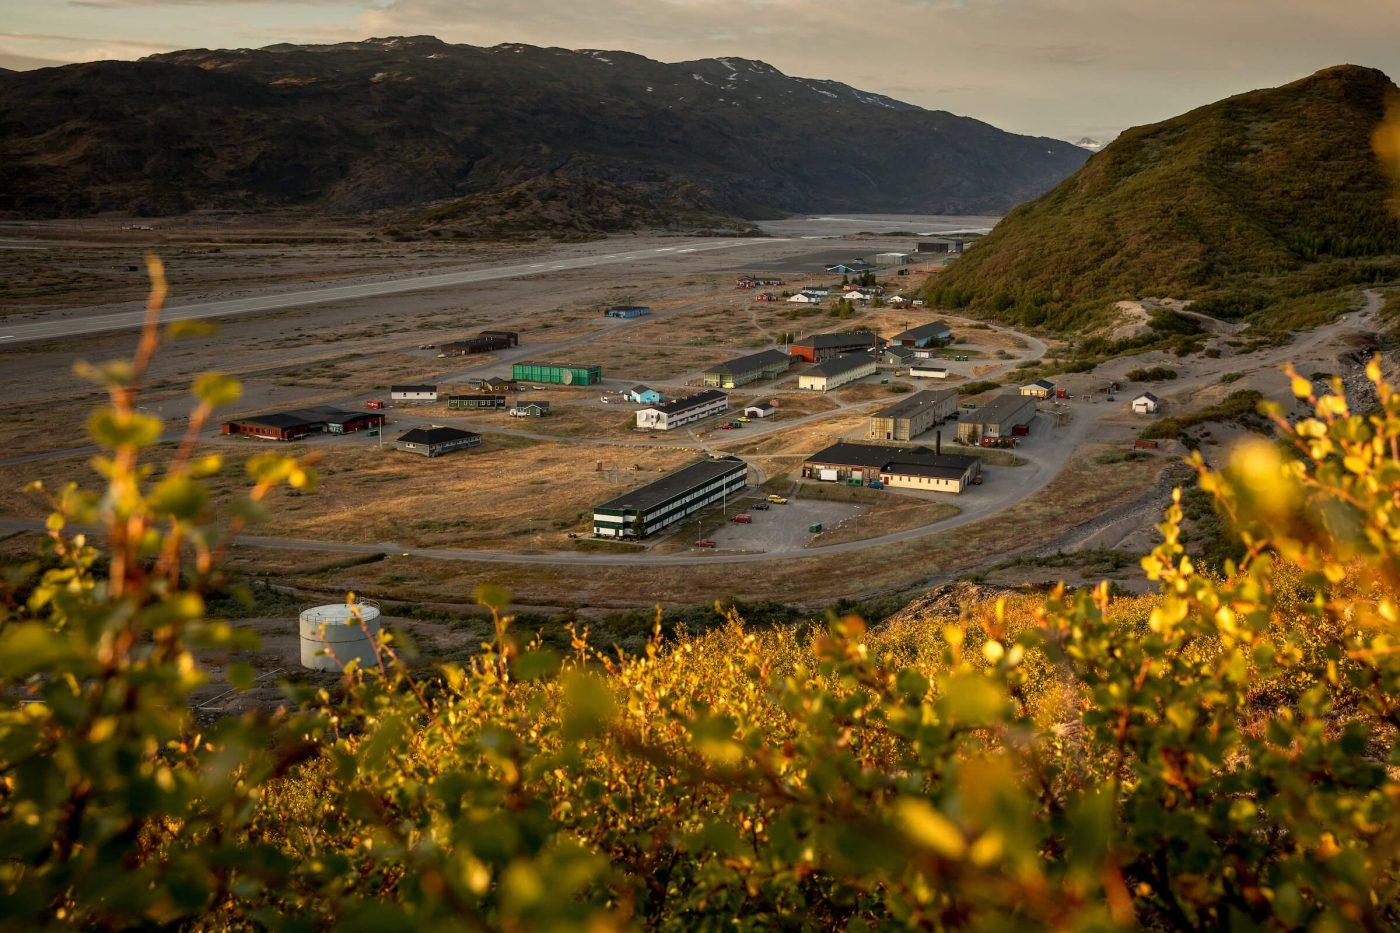 Narsarsuaq in South Greenland at sunset. Photo by Mads Pihl.